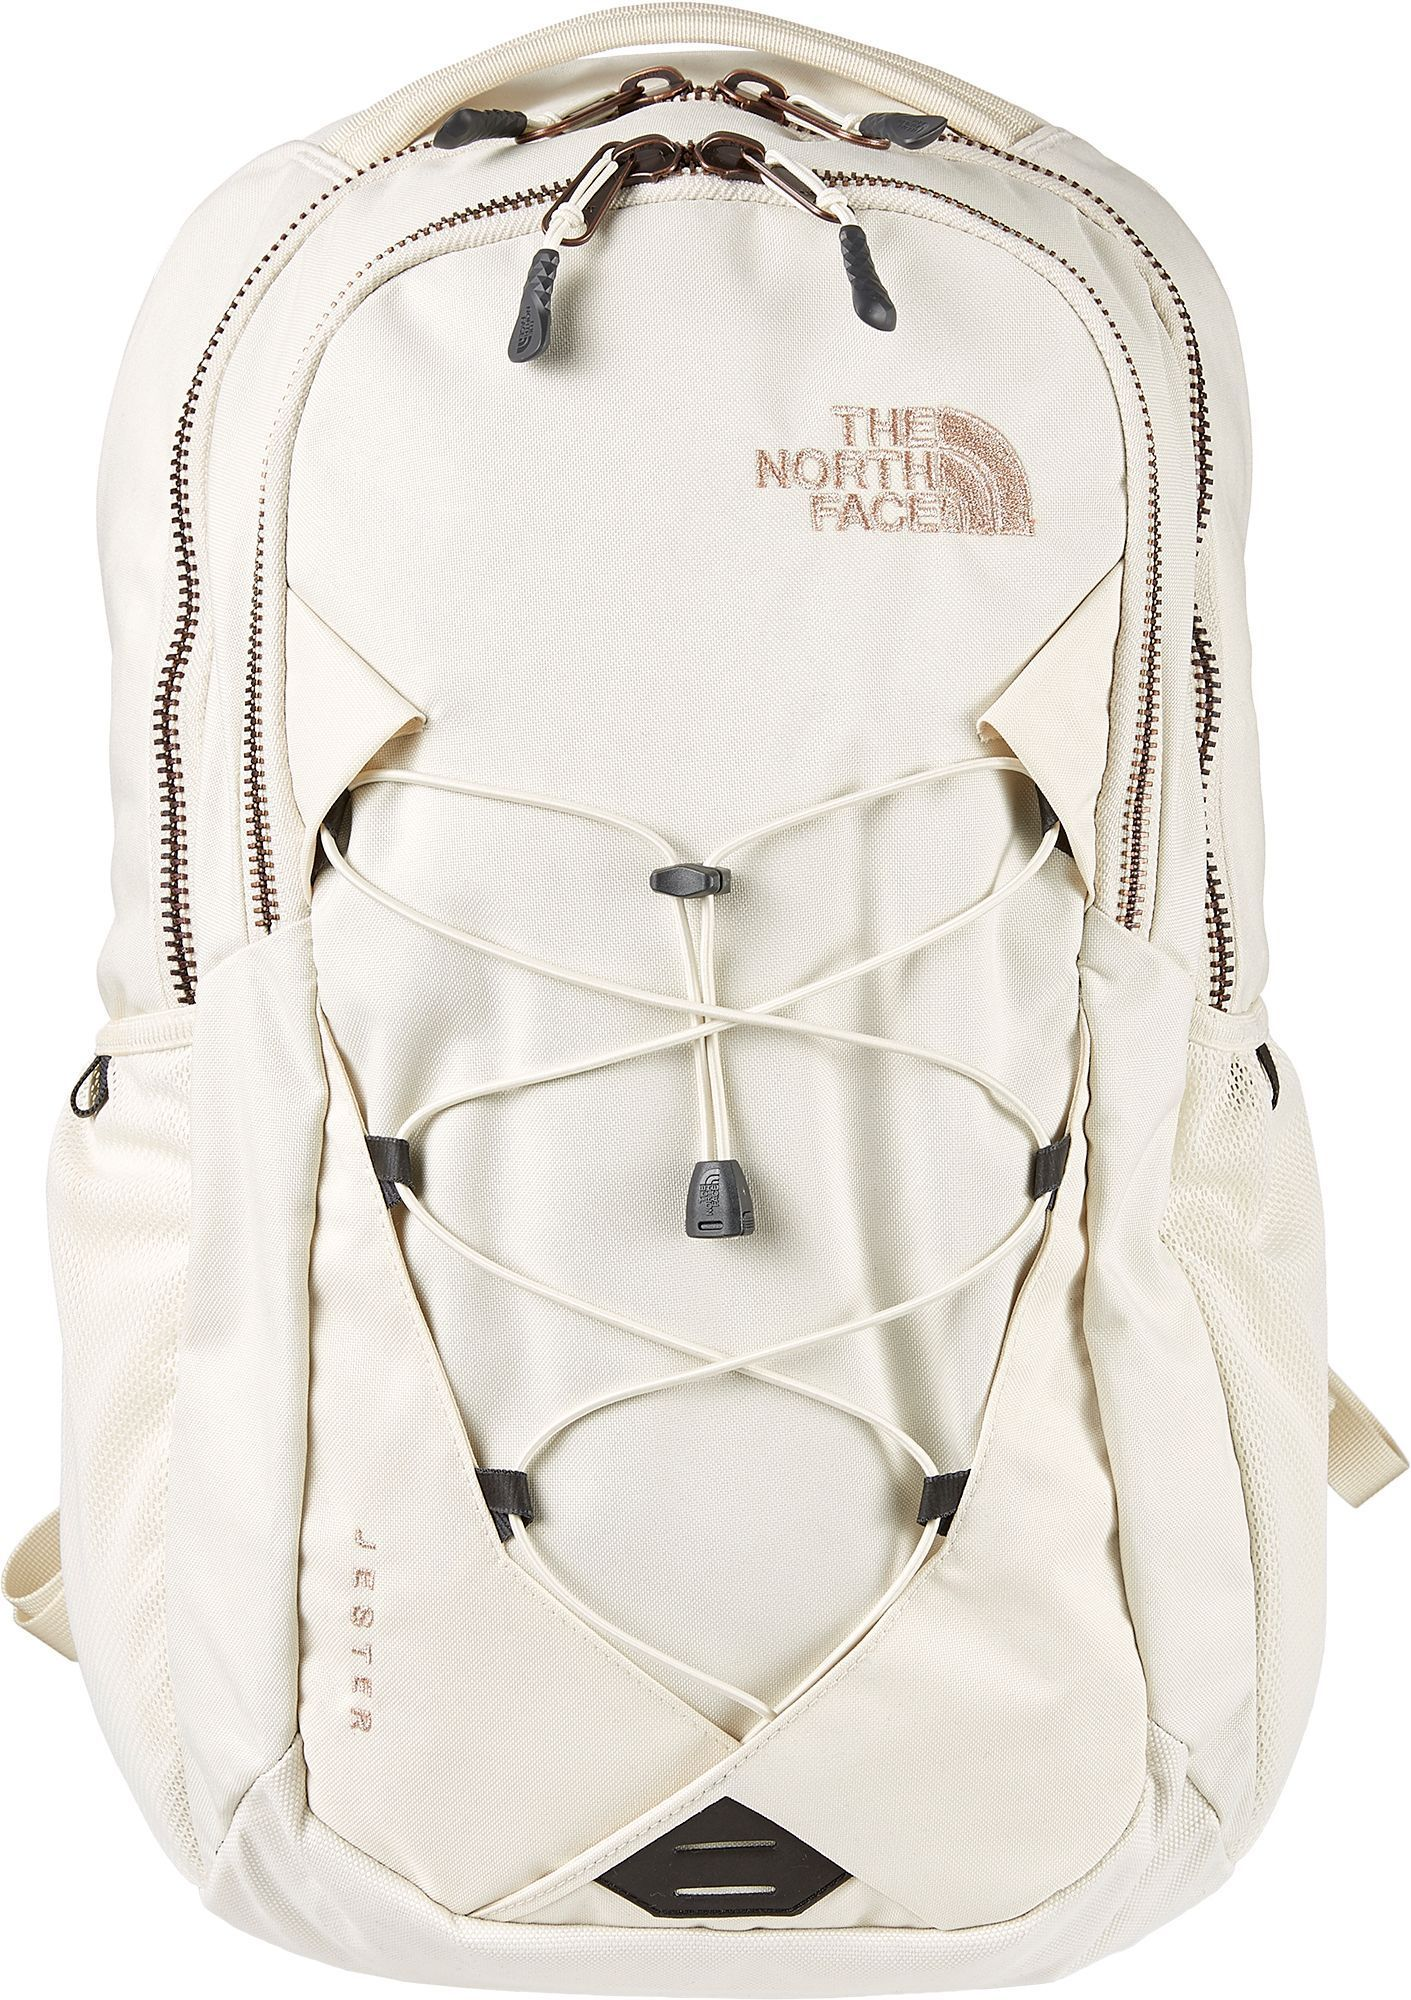 4113ee3ffc5 The North Face Women's Jester Luxe Backpack, Vintage White/Rose Gold  #backpackhandbags